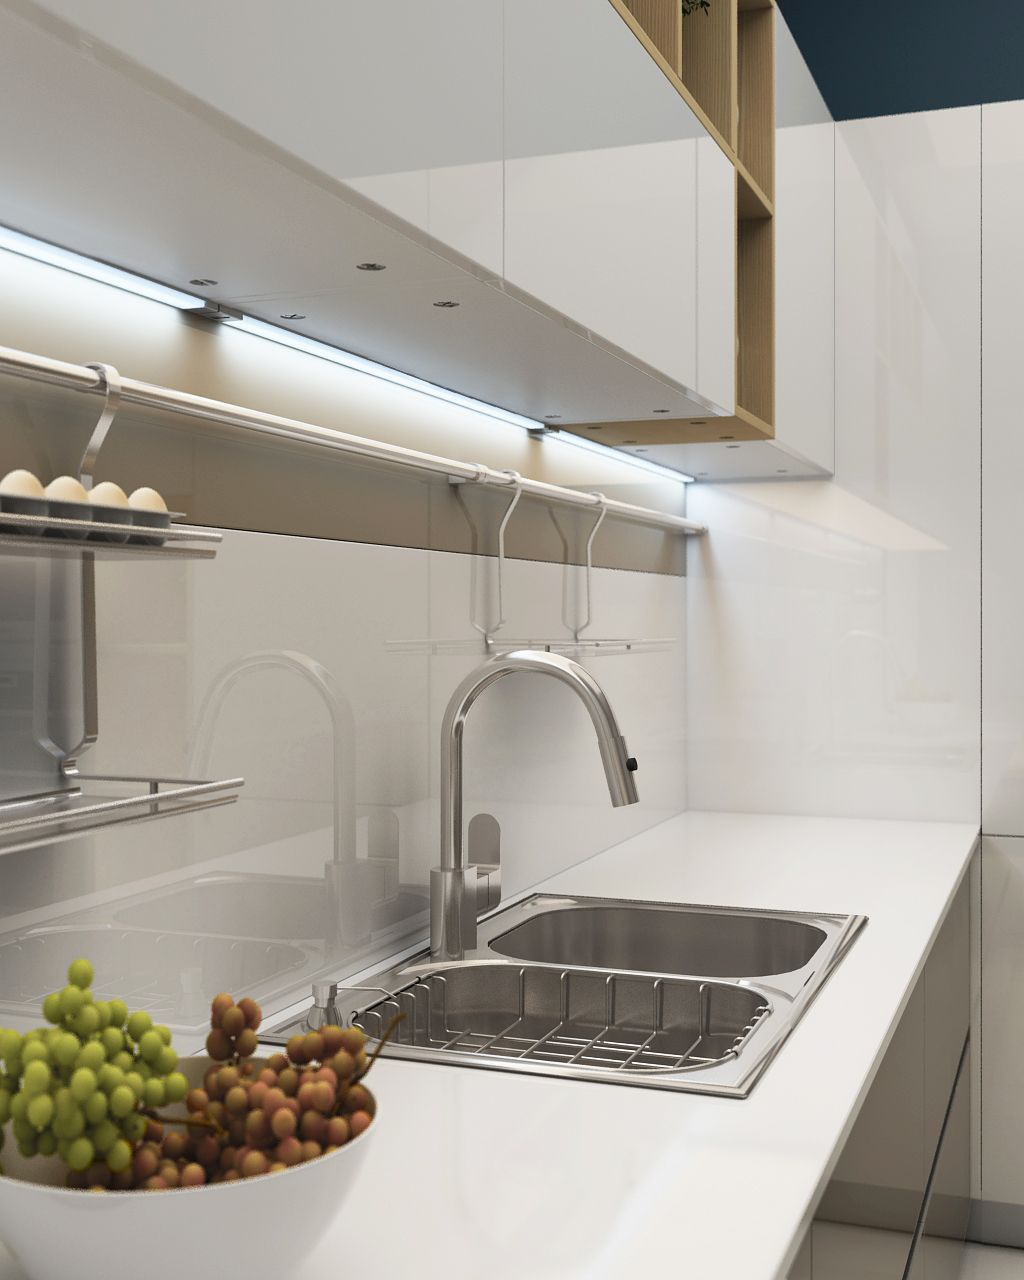 Pin By Zbomcabinets On Sur Saone Kitchen Cabinet Manufacturers Bathroom Cabinets Home Decor